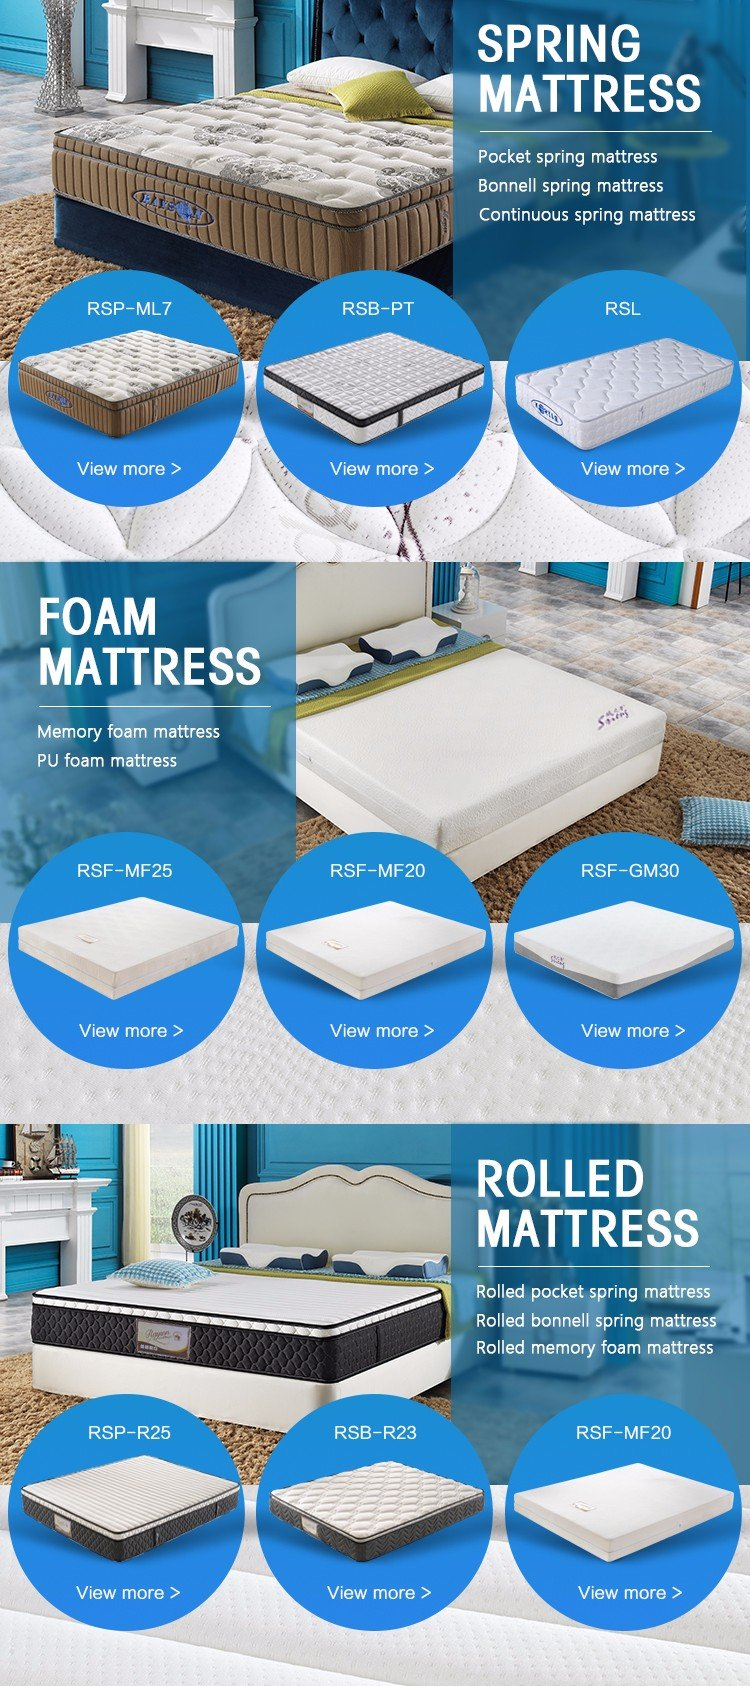 Rayson Mattress customized kluft mattress manufacturers-9